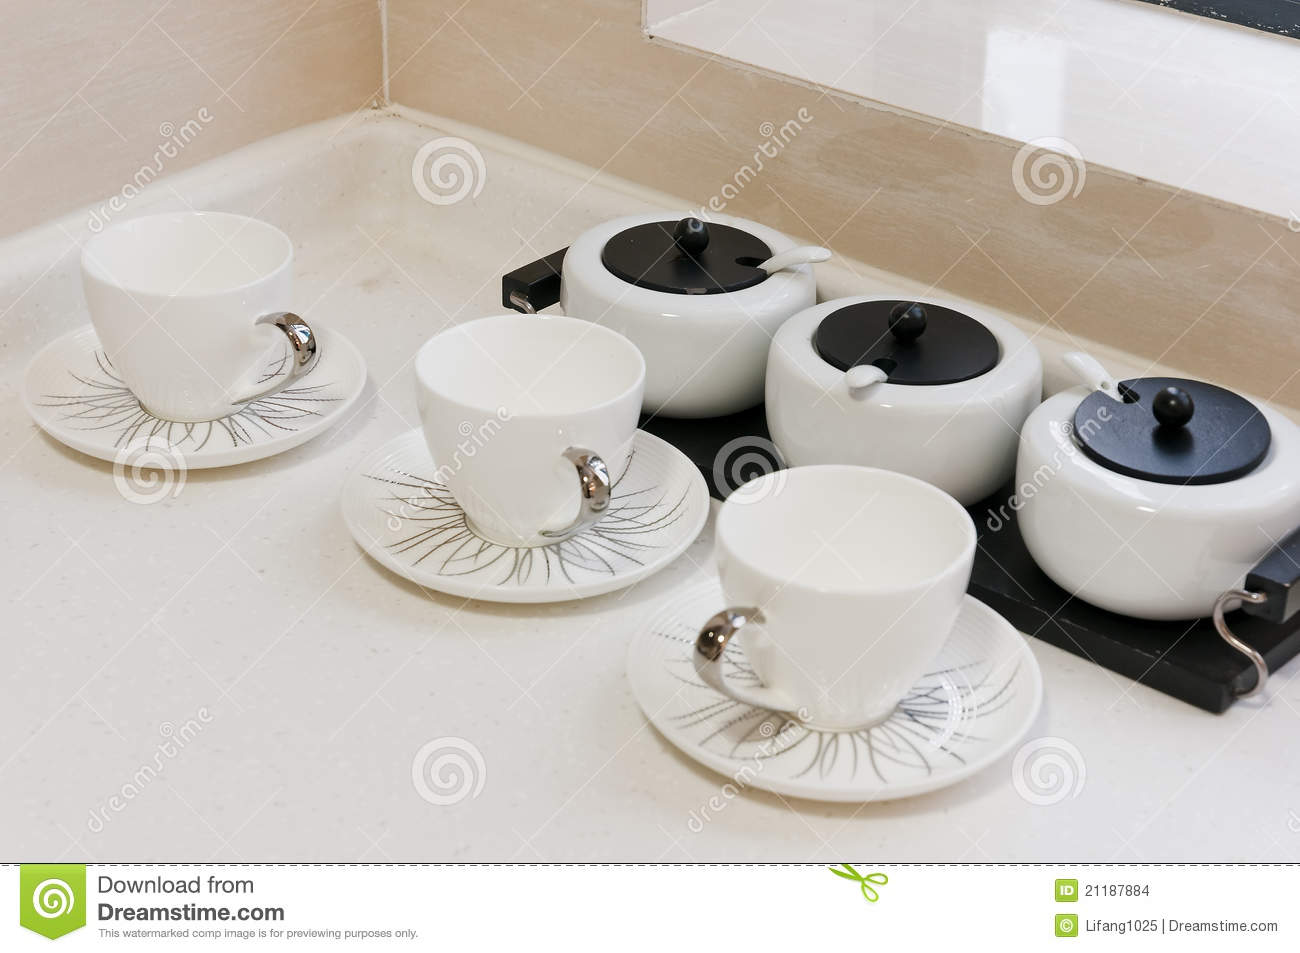 Tea cup in kitchen